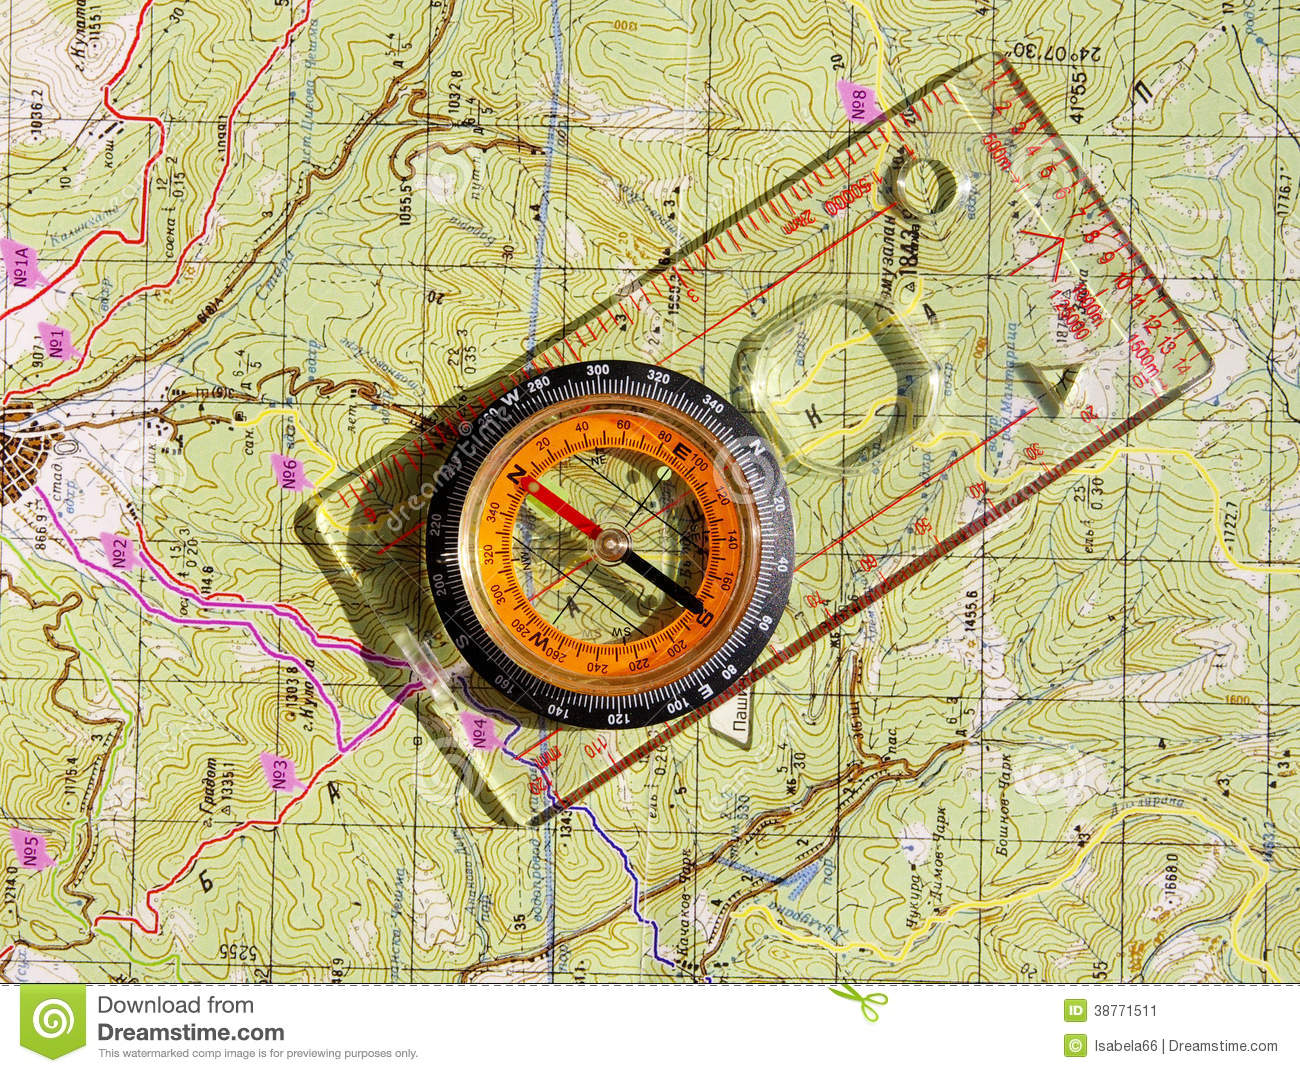 Walkers Compass And On A Topo Map Stock Image